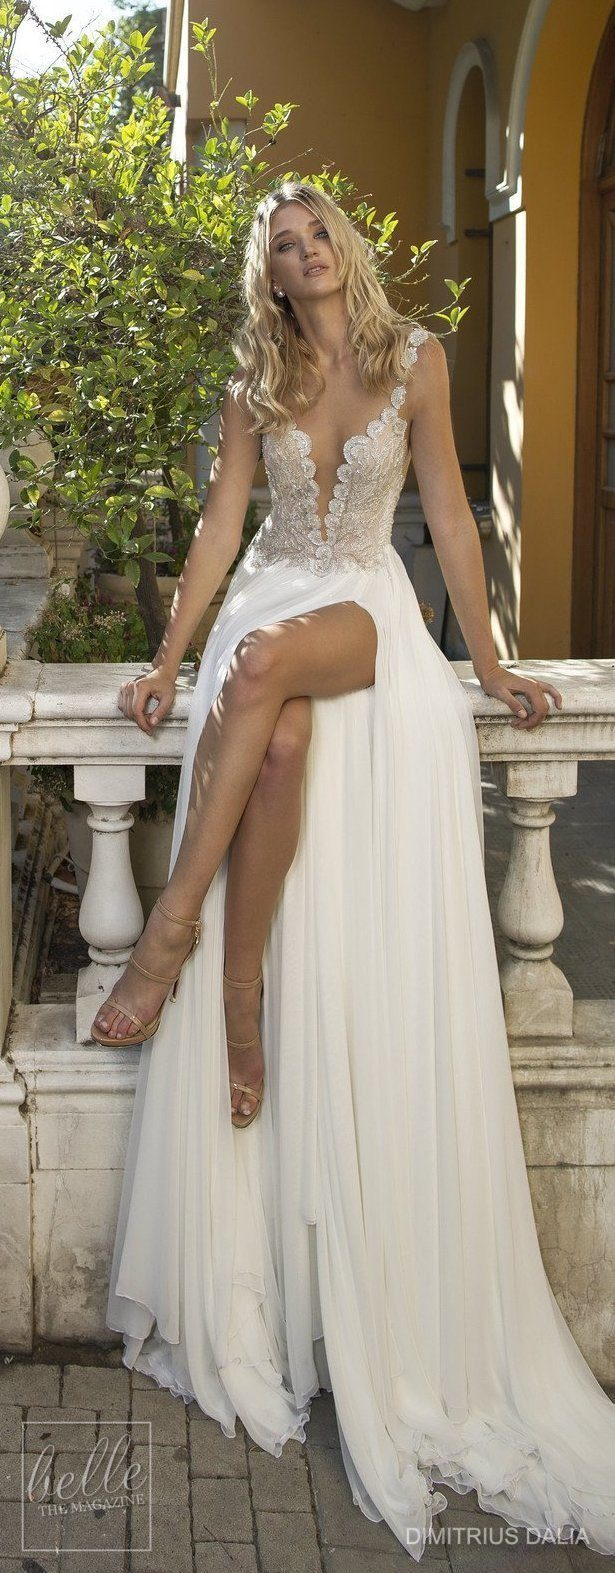 Dimitrius Dalia Wedding Dresses 2017 - Tel Aviv Collection